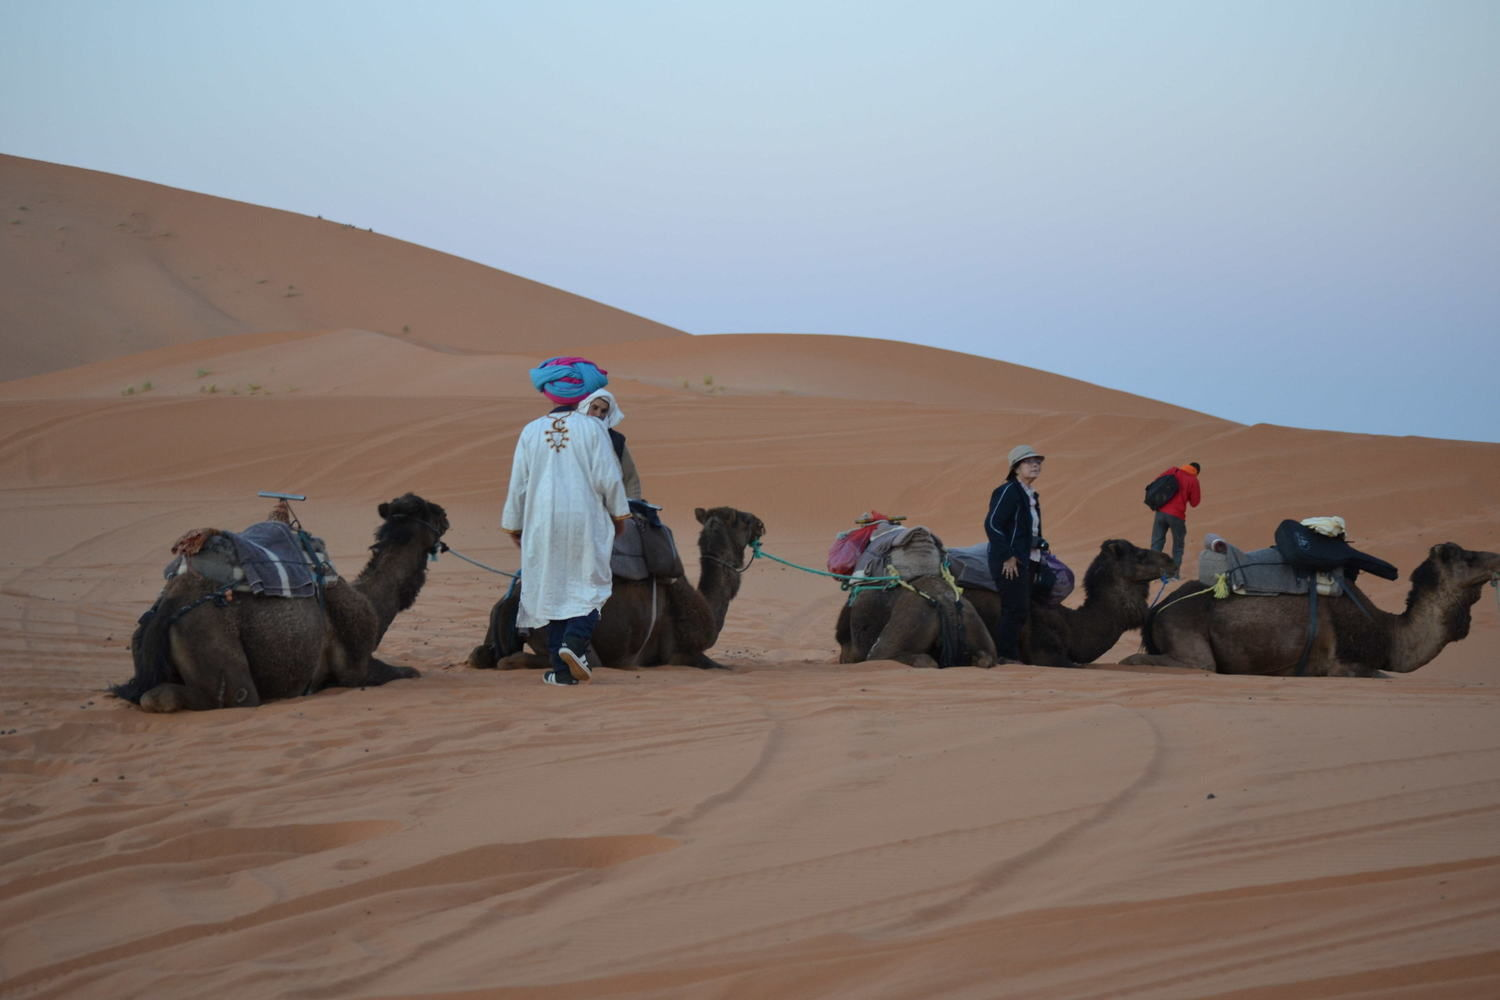 Camels route, Morocco